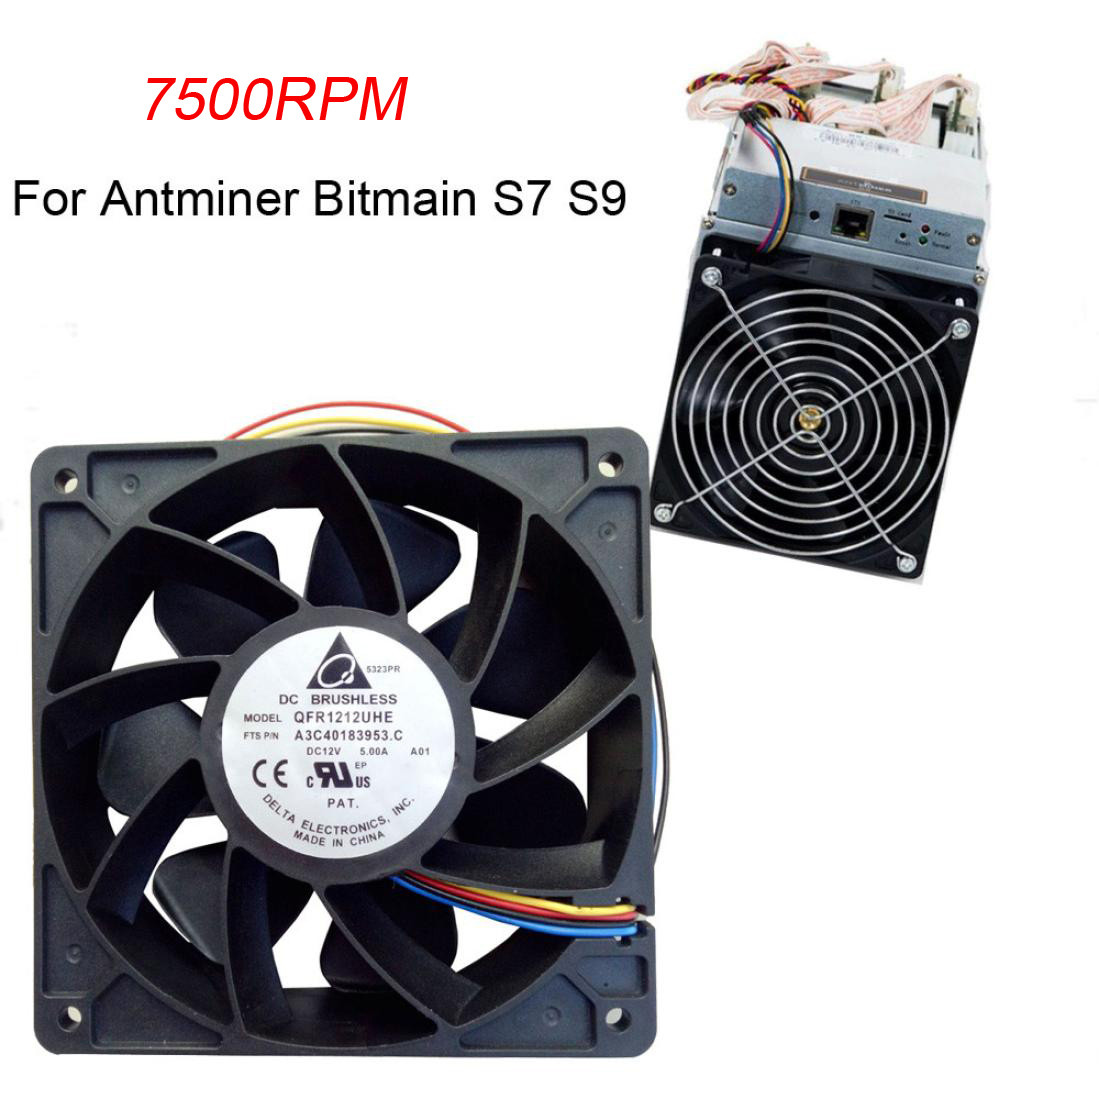 Factory Price 7500RPM Cooling Fan Replacement 4-pin Connector For Antminer Bitmain S7 S9 6M3 Drop Shipping